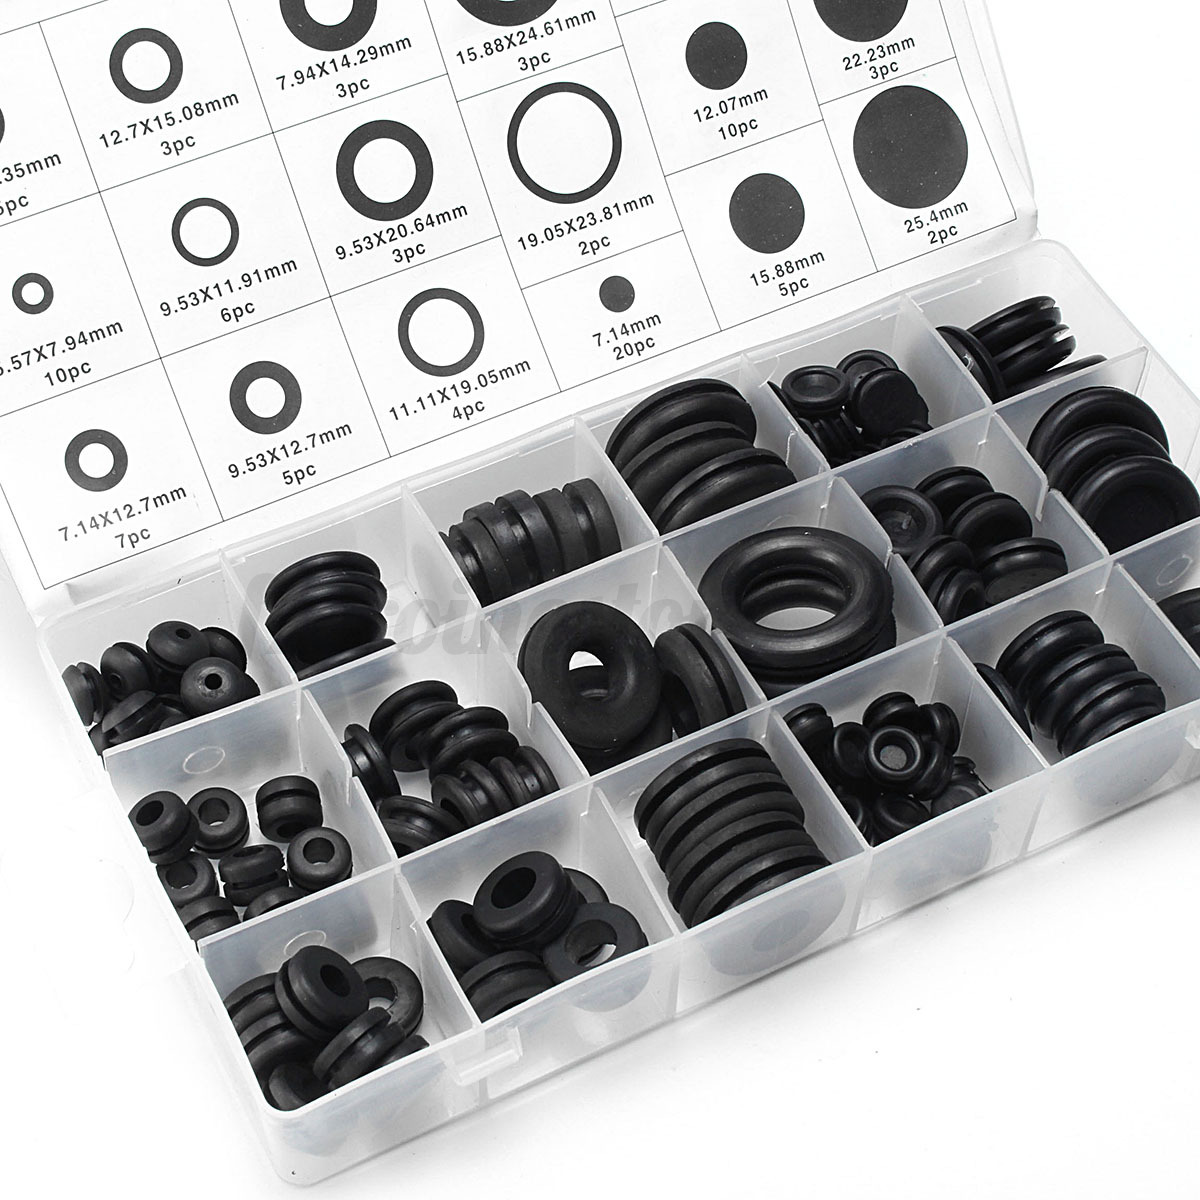 125pc Rubber Blanking Grommet Wiring Closed Open Blind Grommets Set 1 Of 10free Shipping Assorted Kit